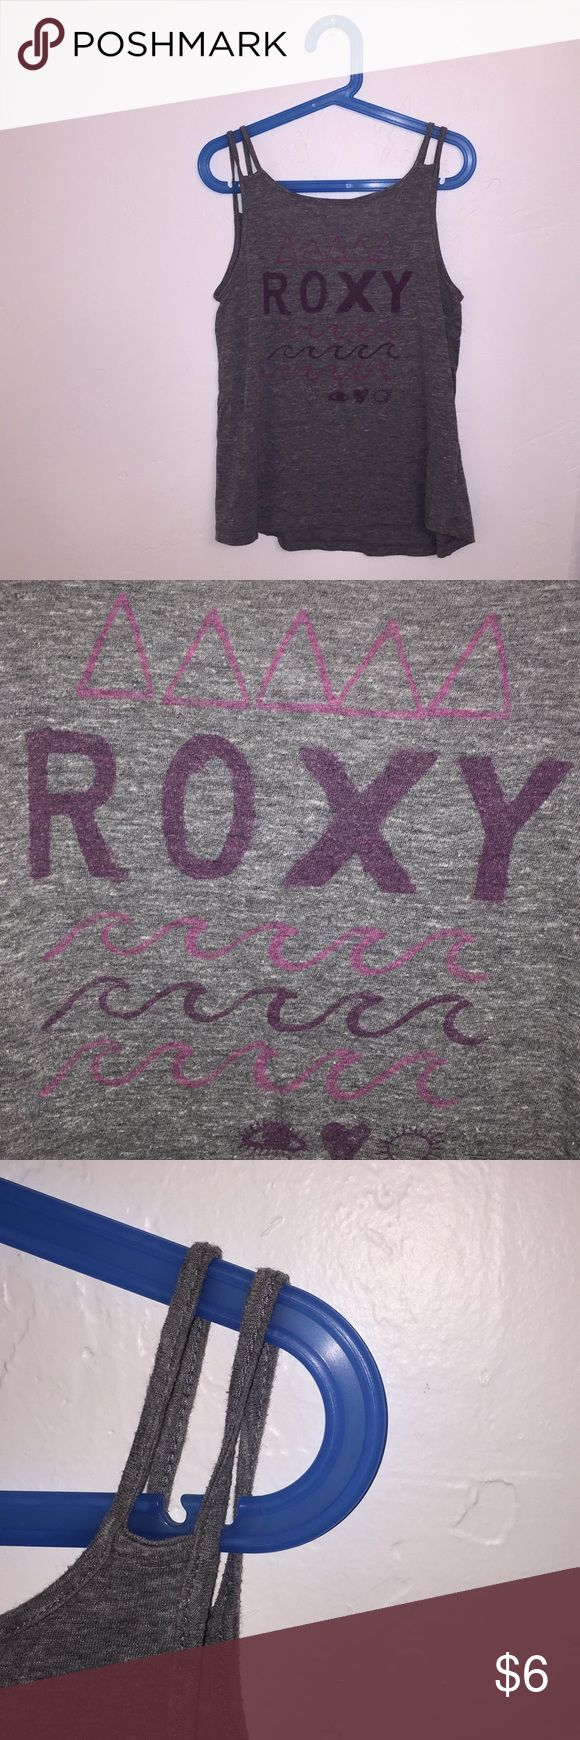 Roxy Top - size XL girls (i am a size small in women's and it fits me) - double stranded straps - cute writing - grey - perfect condition Roxy Tops Tank Tops